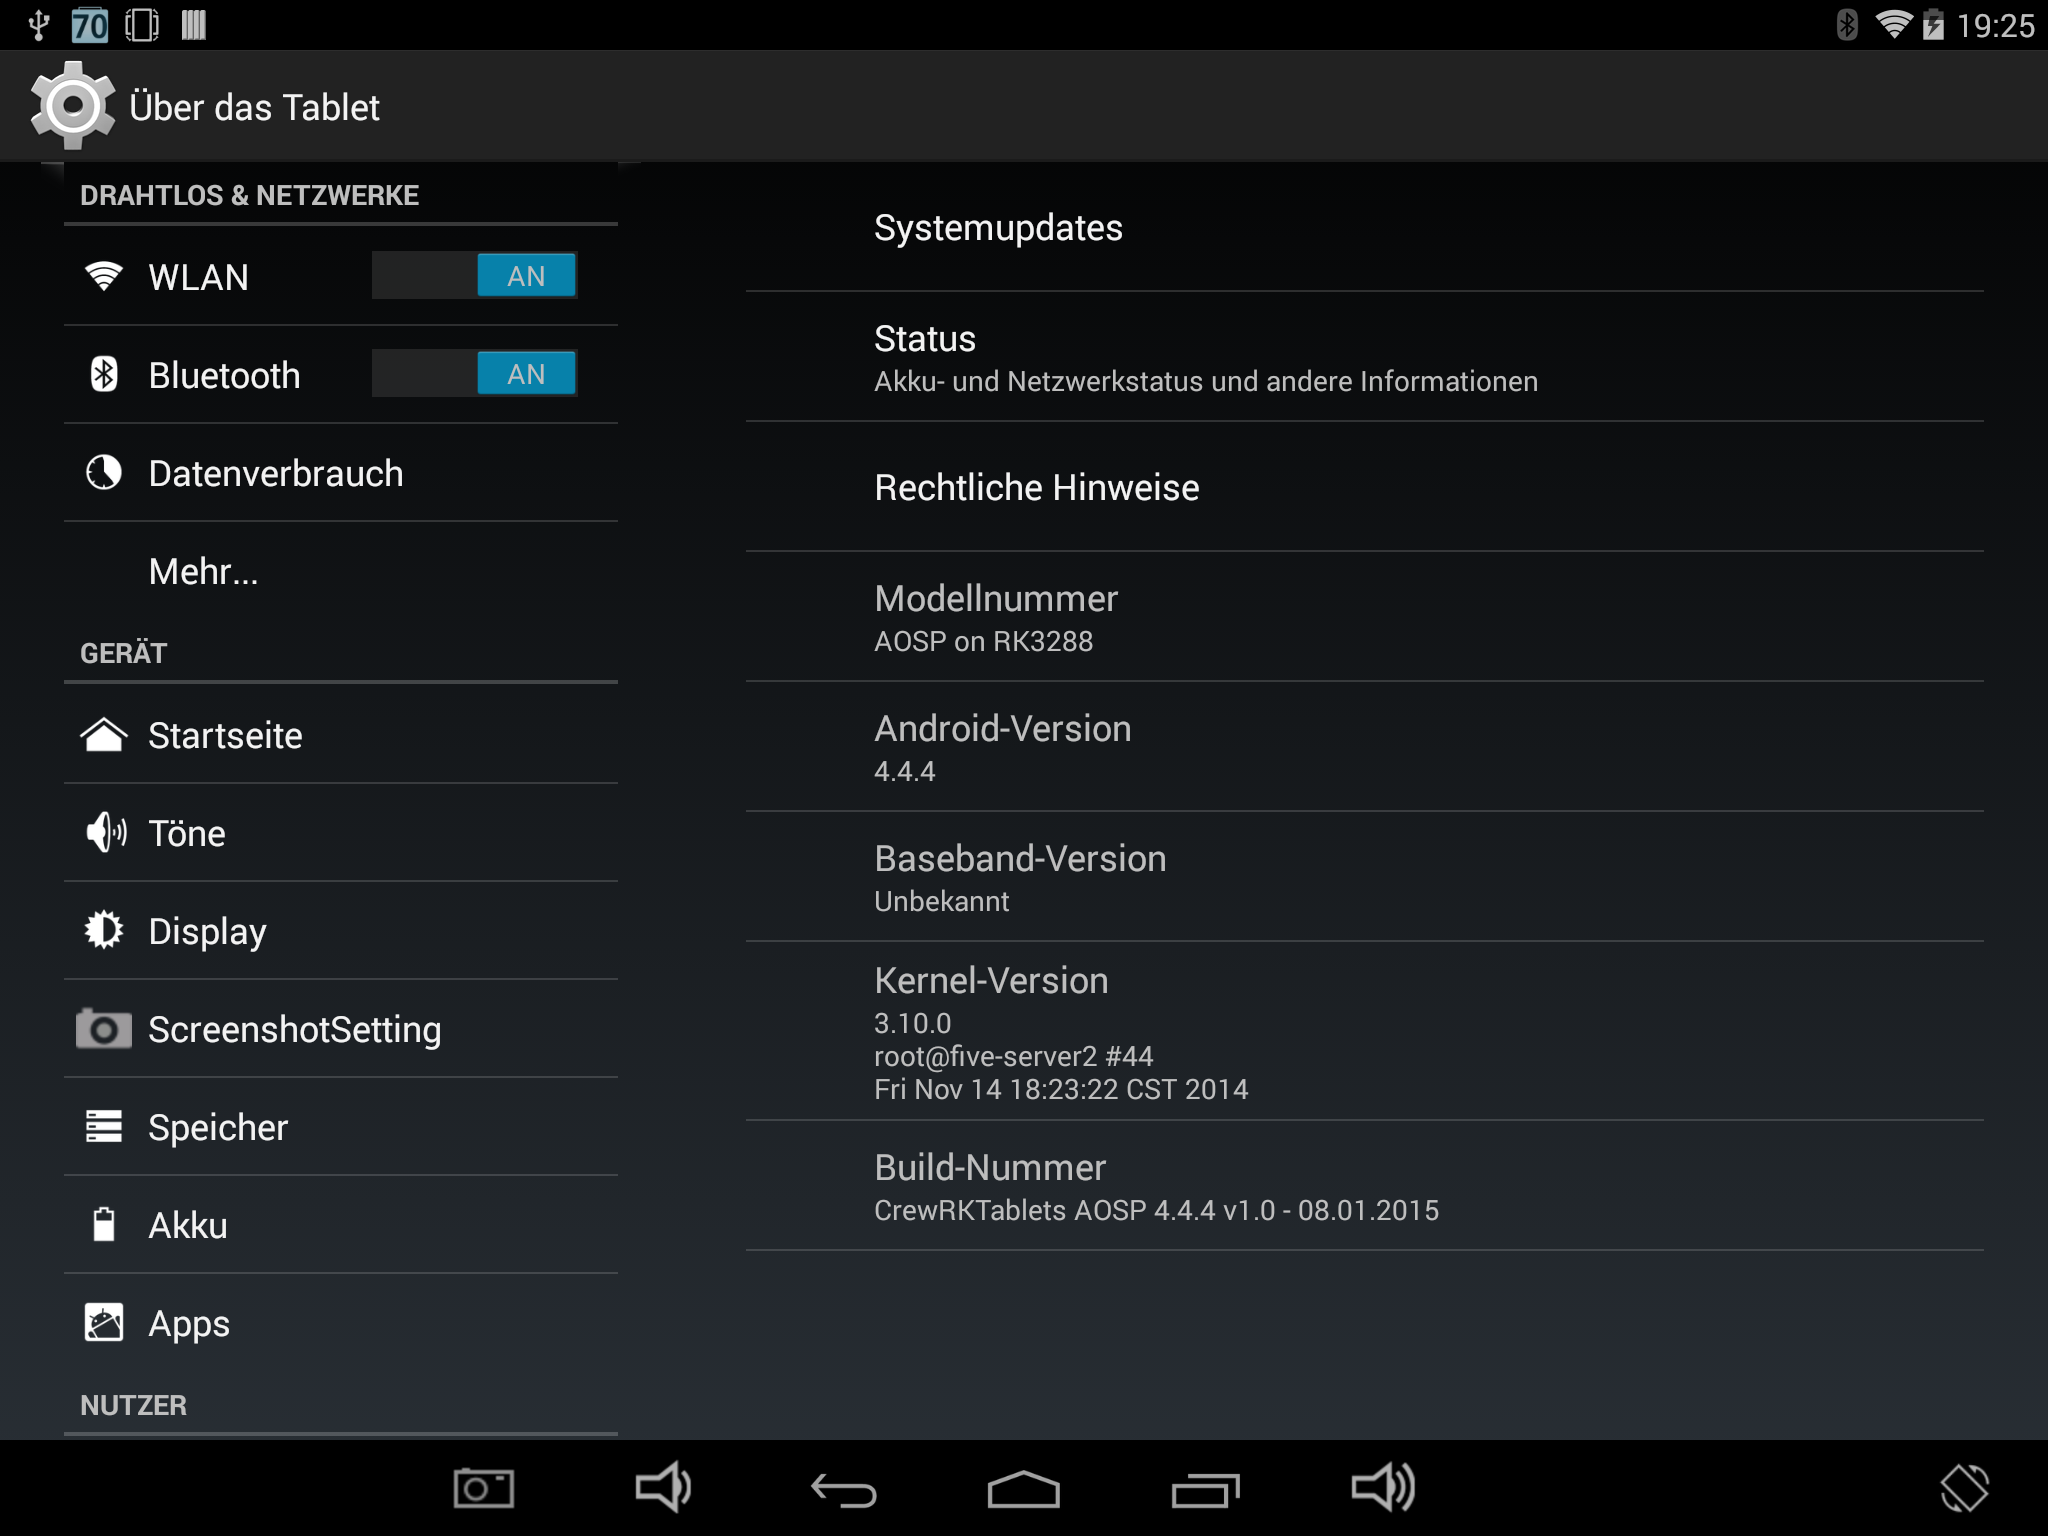 CrewRKTablets-RK32-Air-AOSP-4.4.4-build-v1.0-08.01.2015.png